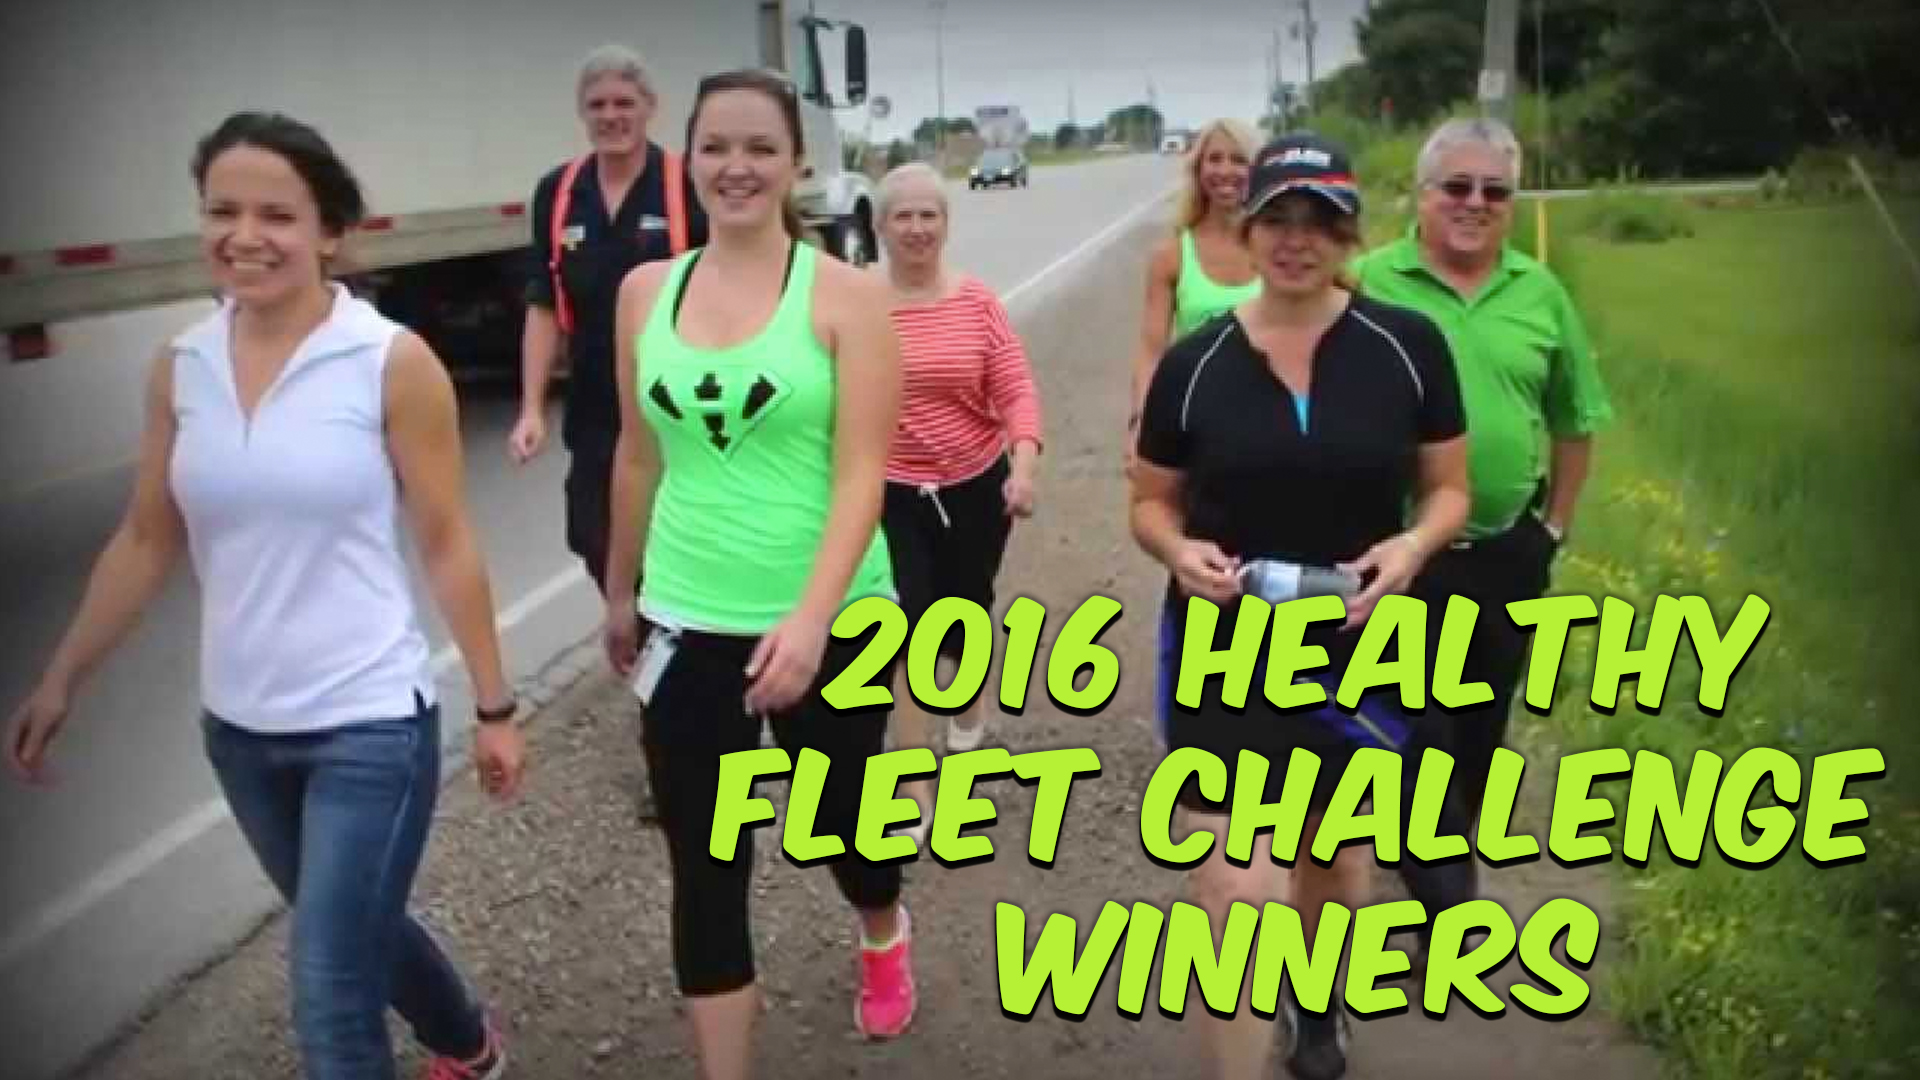 Healthy Fleet Winners